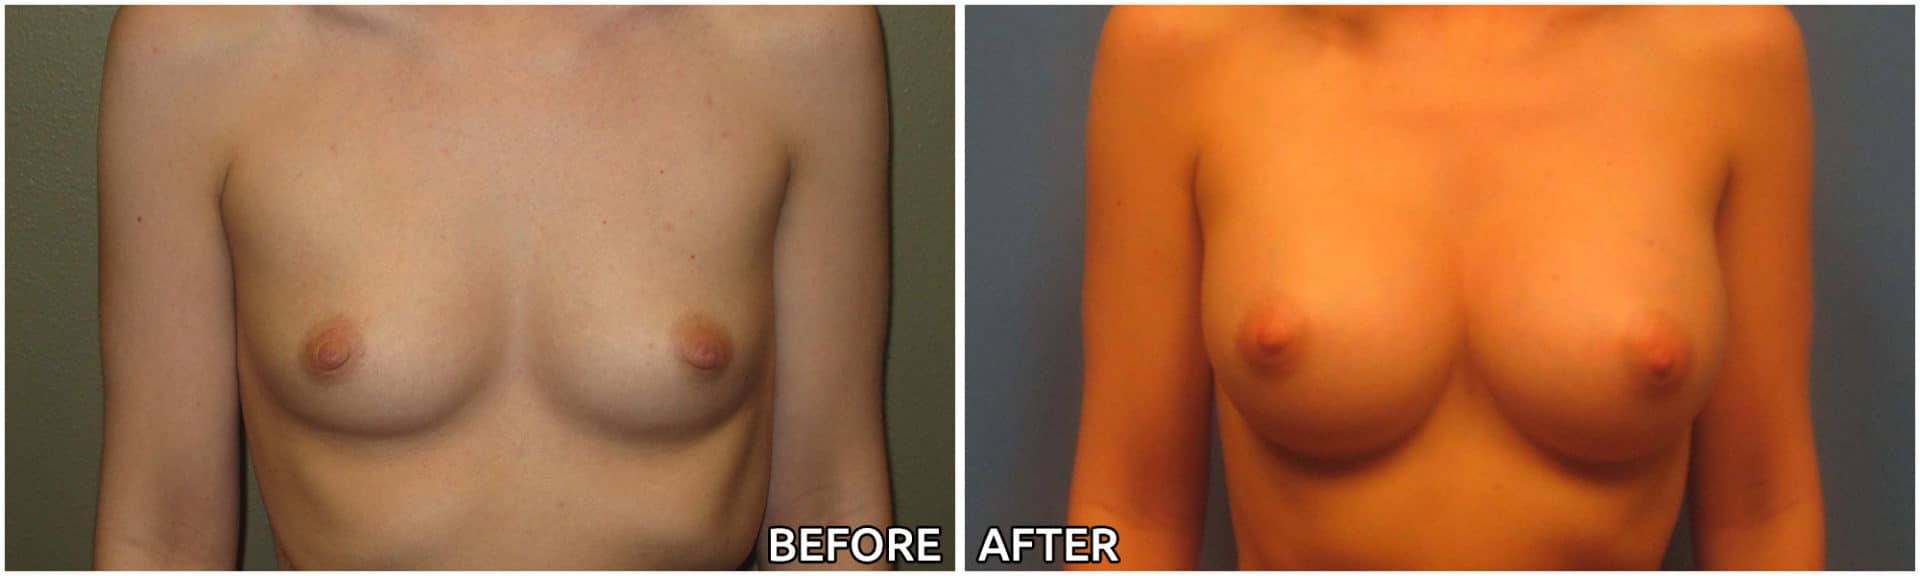 breast-augmentation35